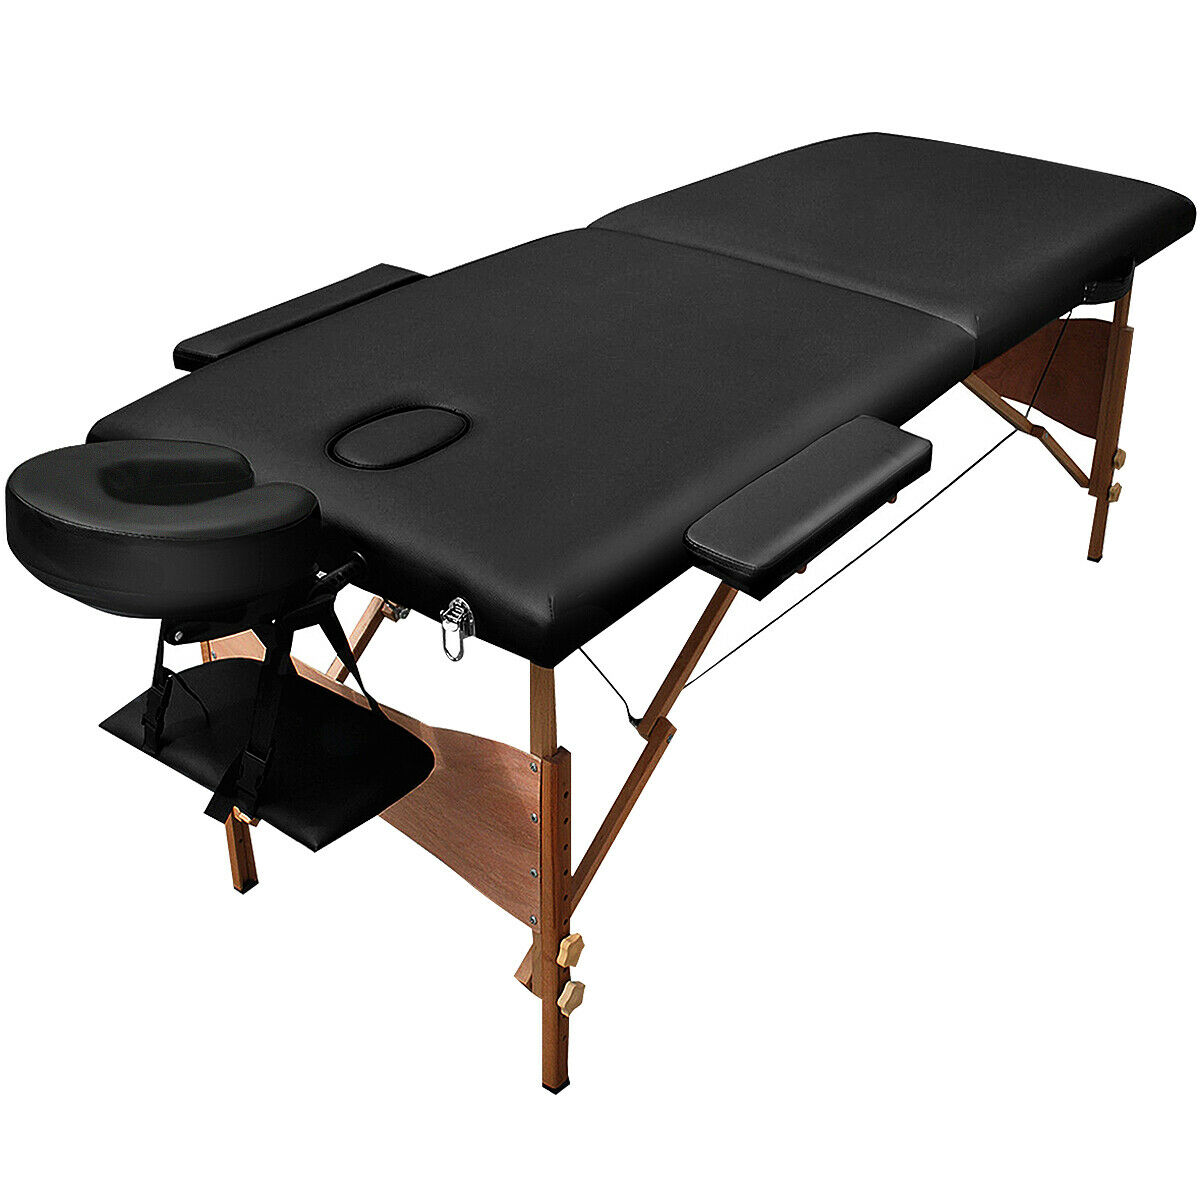 """Costway 84""""l Portable Massage Table Facial SPA Bed Tattoo W/free Carry Case (Black)"""